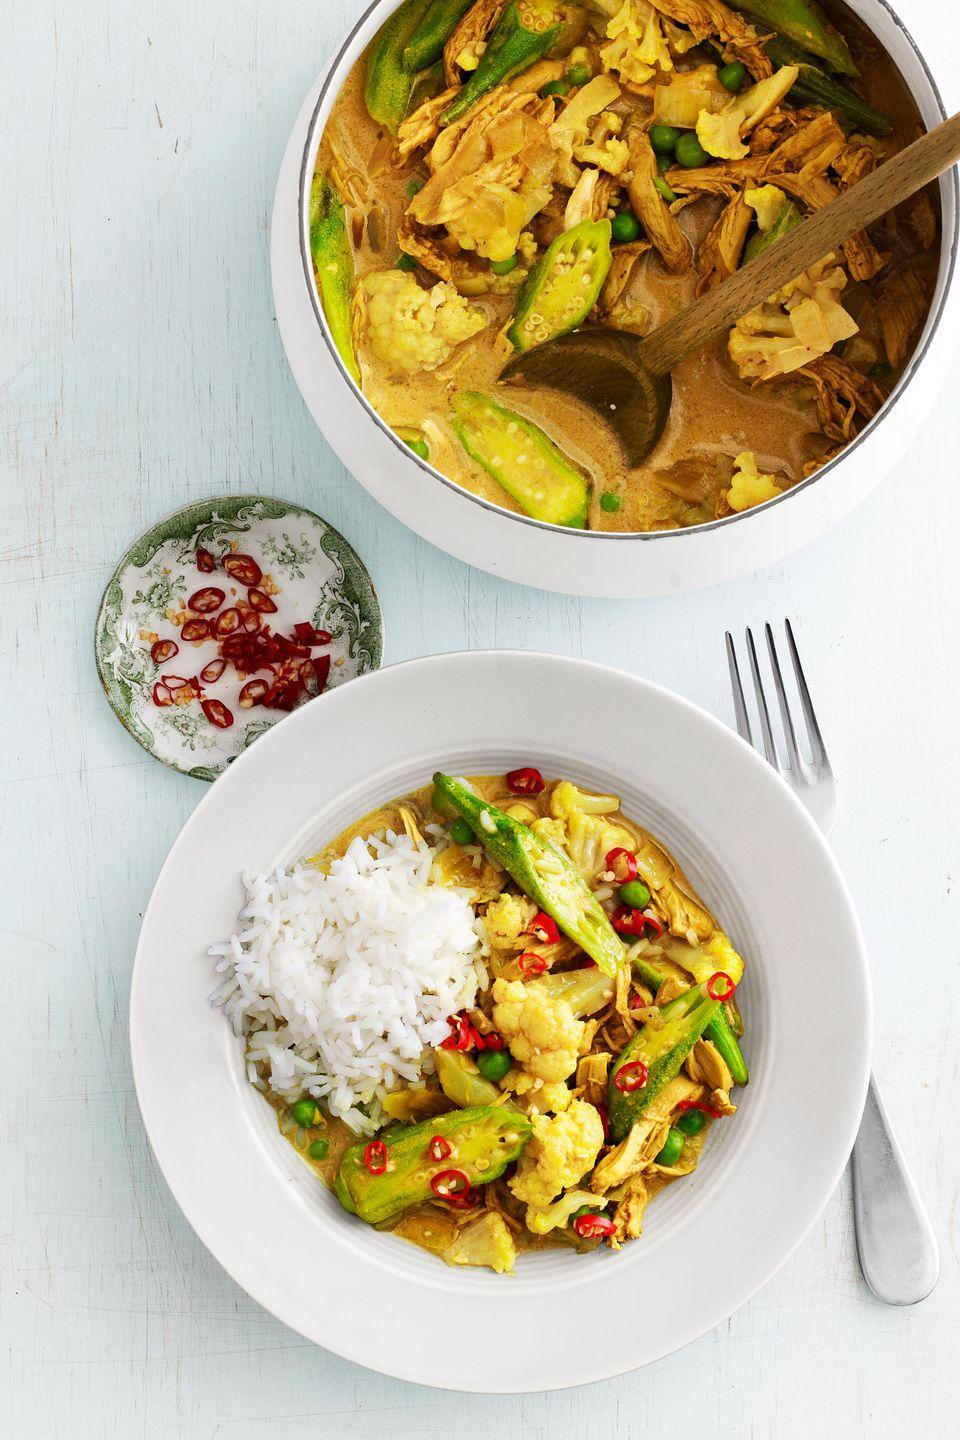 "<p>Lighten up! Substitute 2 tablespoons canola oil for the butter, and opt for light coconut milk, to save 170 calories and 20 grams of fat per serving.</p><p><strong><a href=""https://www.countryliving.com/food-drinks/recipes/a4219/chicken-okra-curry-recipe-clv0913/"" rel=""nofollow noopener"" target=""_blank"" data-ylk=""slk:Get the recipe."" class=""link rapid-noclick-resp"">Get the recipe.</a></strong></p>"